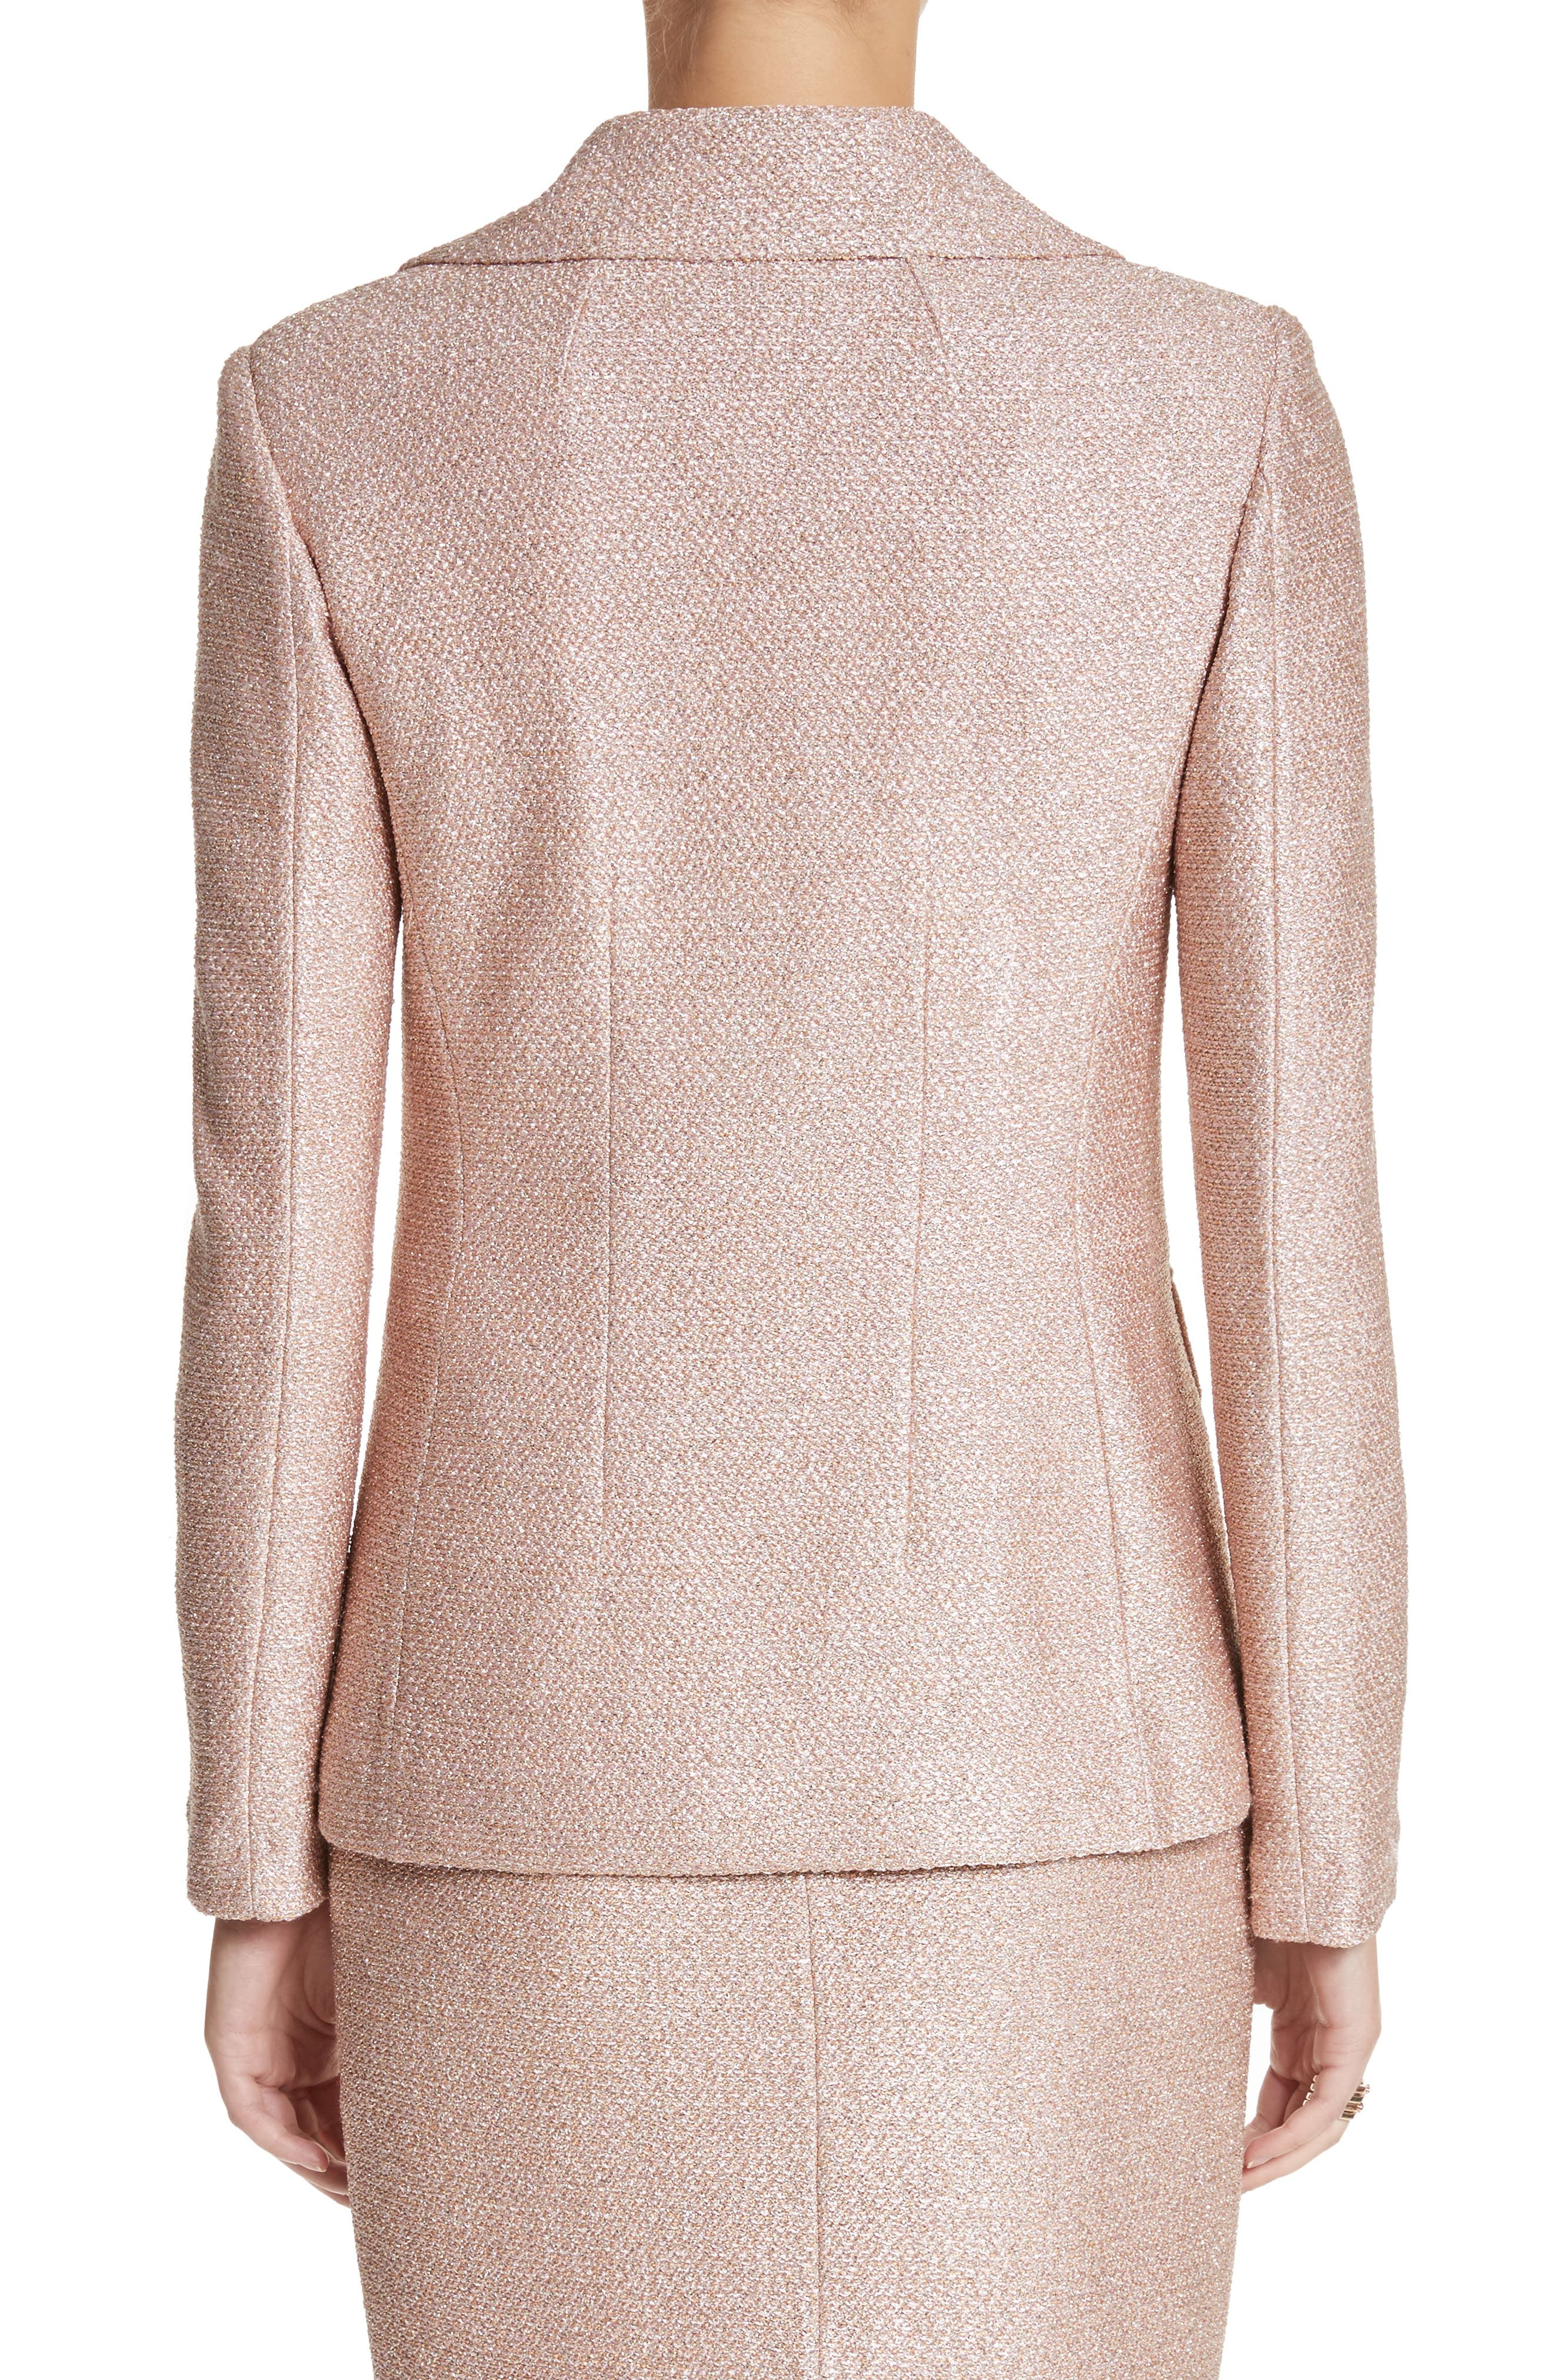 Double Breasted Frosted Metallic Knit Jacket,                             Alternate thumbnail 2, color,                             660